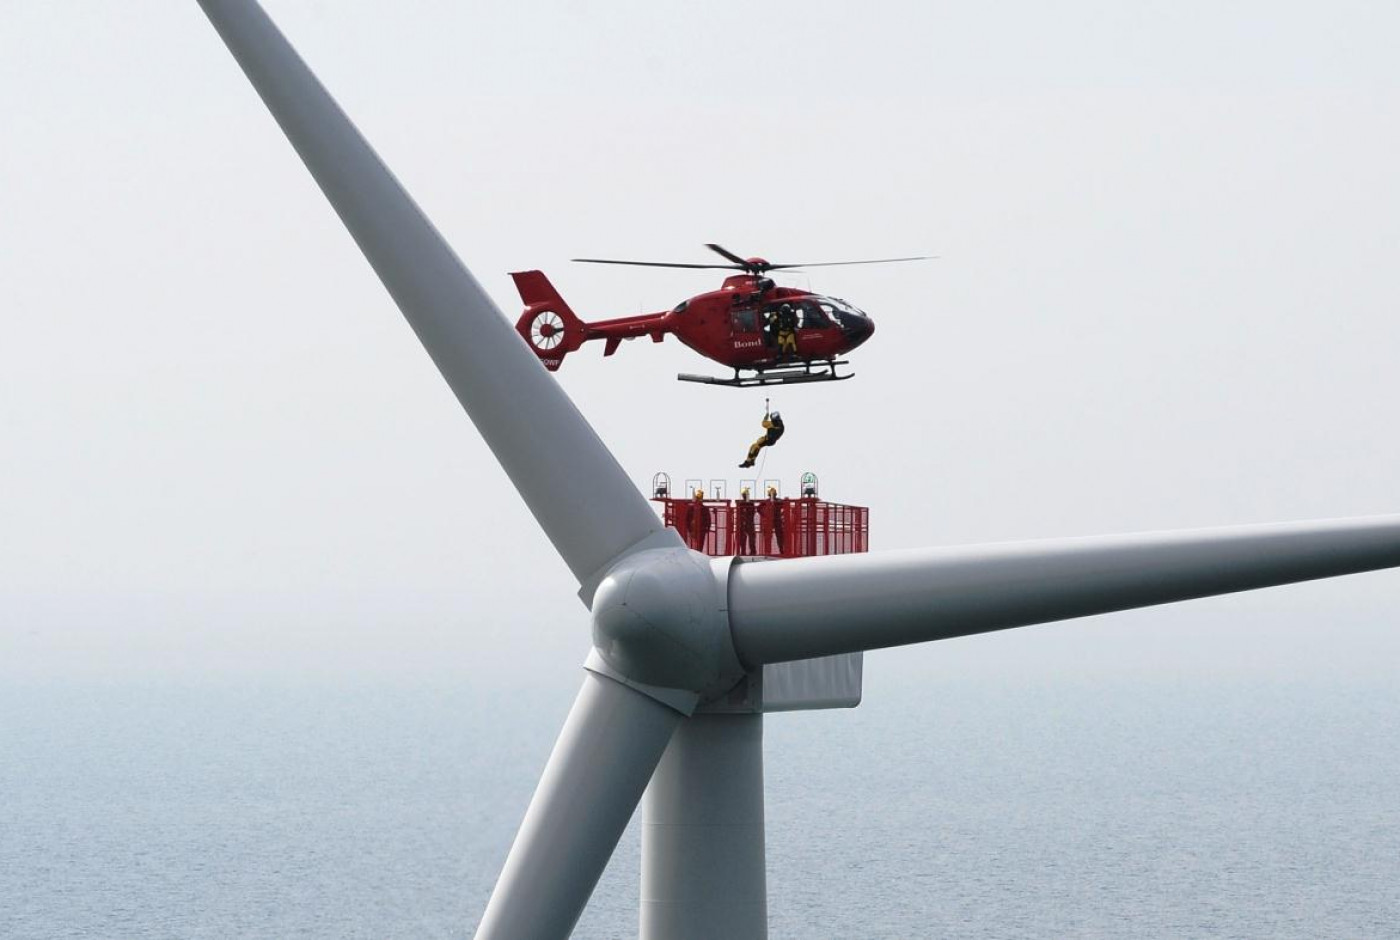 severe weather impacts complex offshore wind farm operations wind turbine helicopter